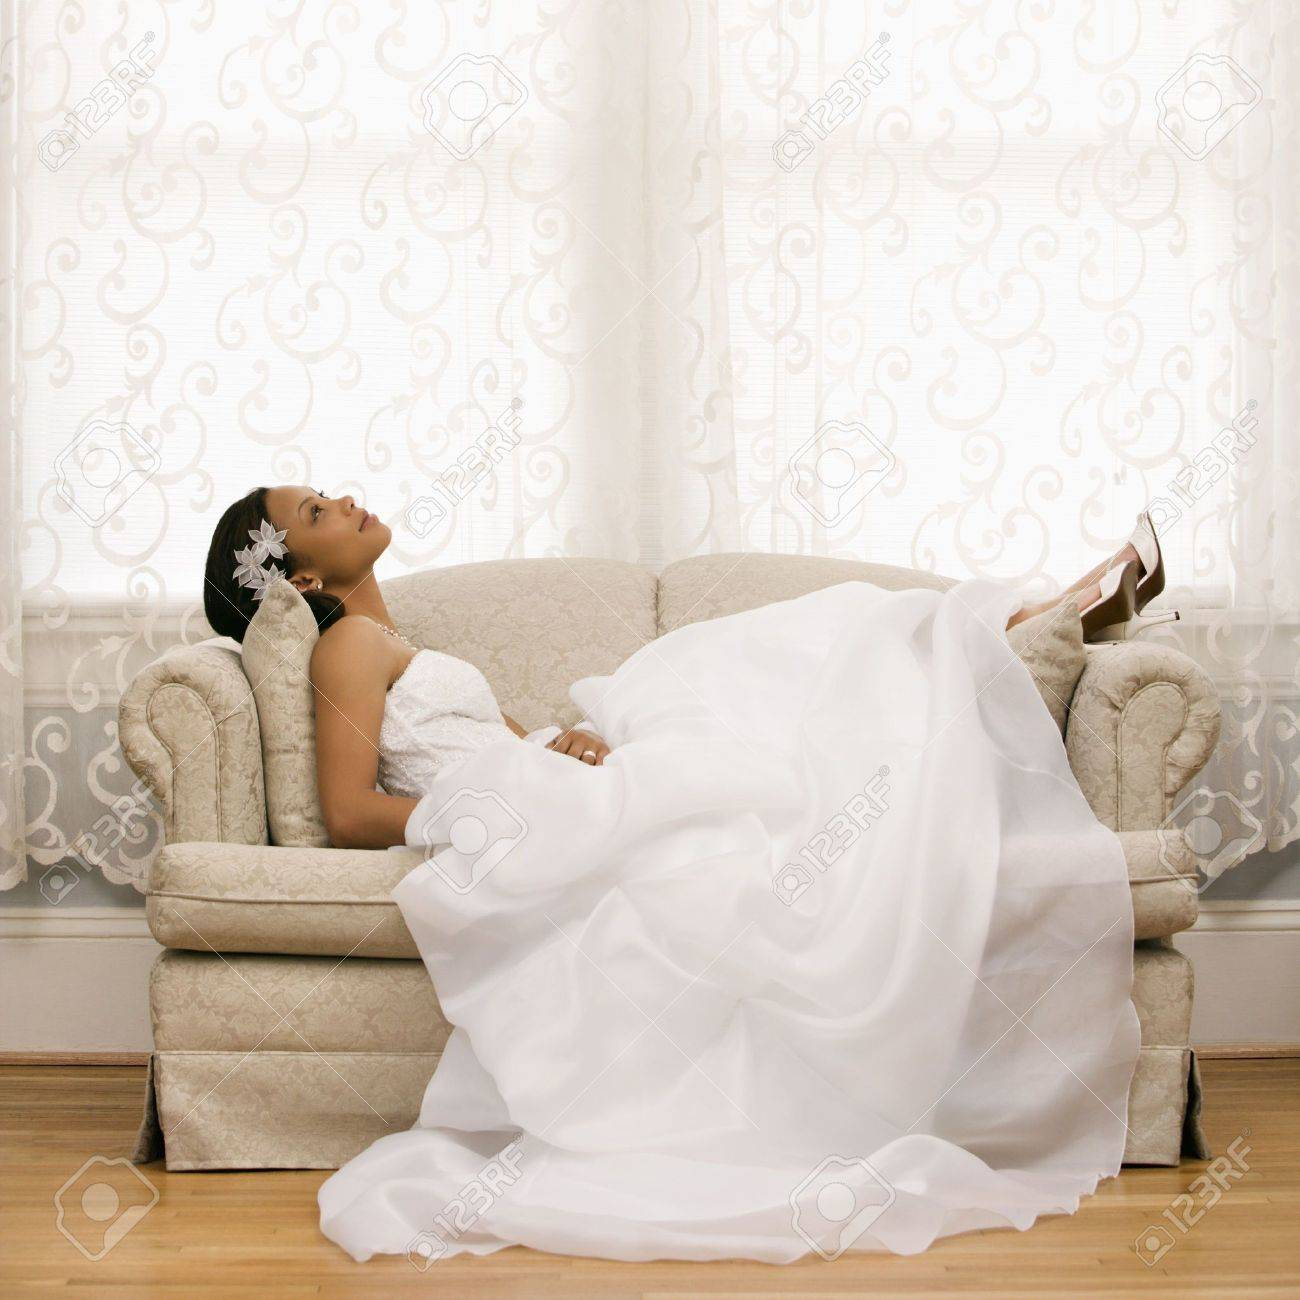 African-American bride lying on love seat. Stock Photo - 2145622